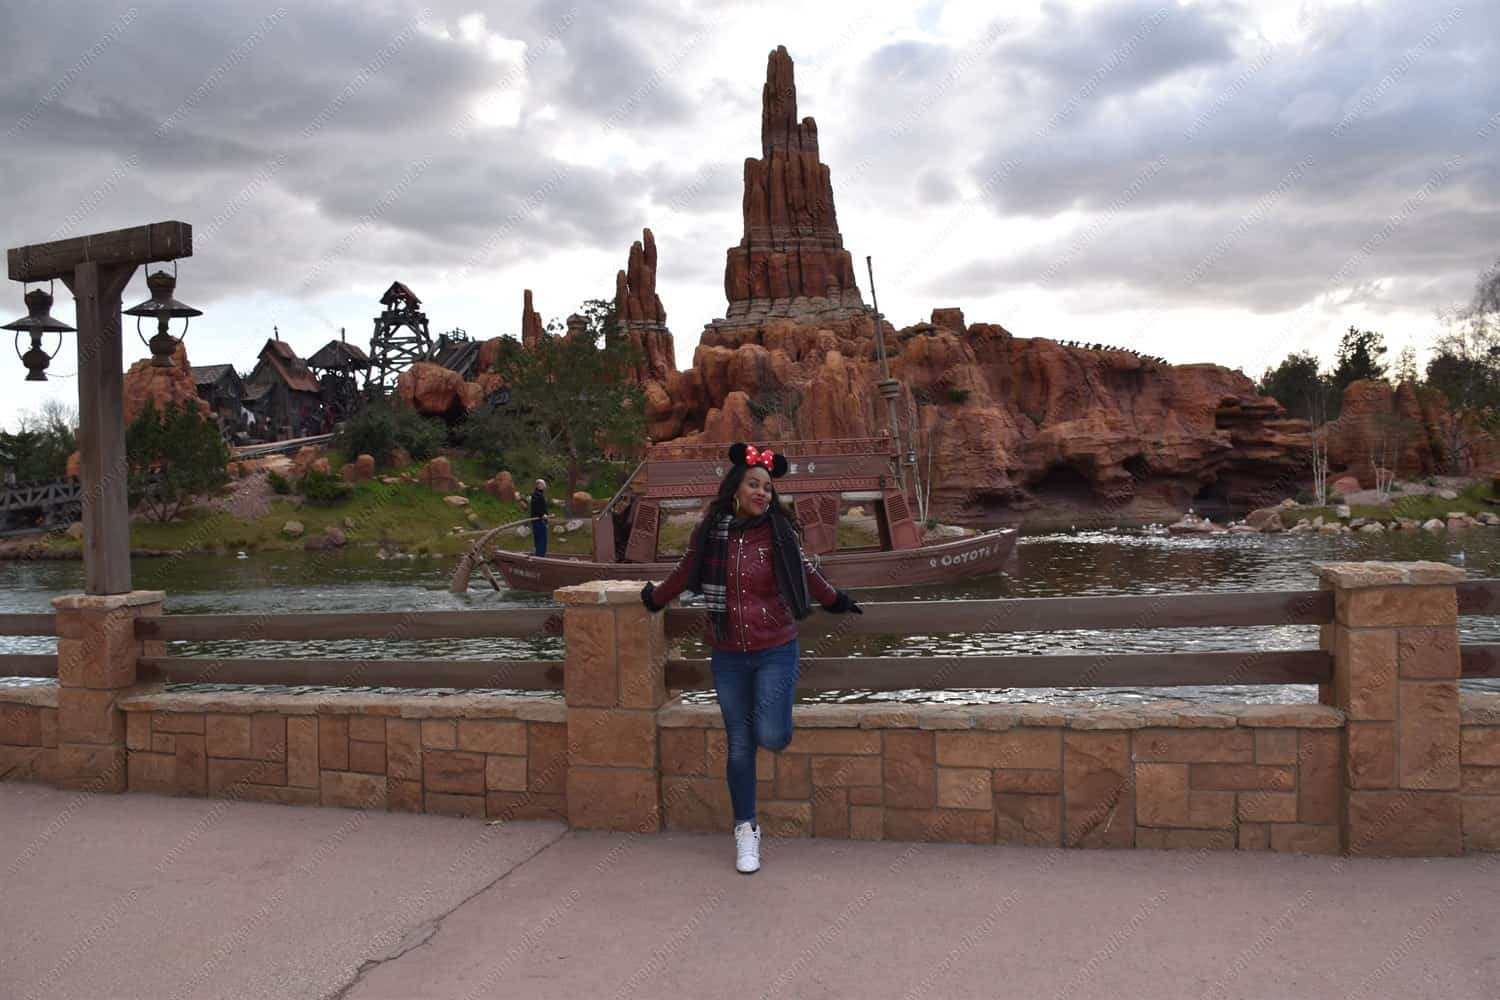 Read more about the article The Frontierland in Disneyland Paris